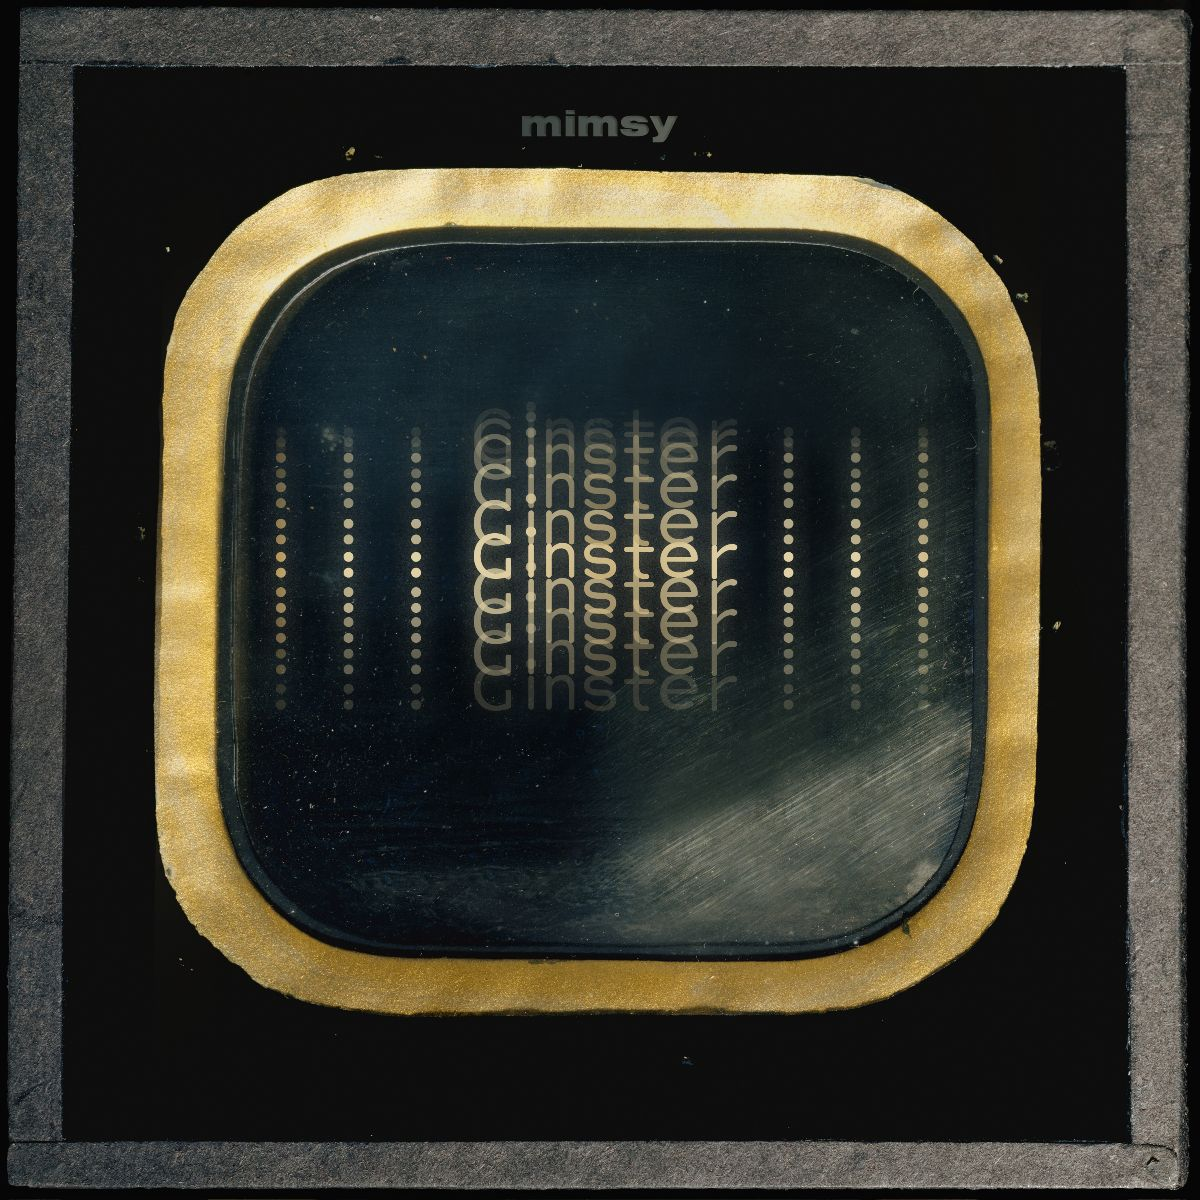 """test Twitter Media - Out Today: Mimsy - 🍃Ginster 🍃 - First Single Release From The Upcoming Album """"Ormeology"""" - https://t.co/RNO8nJF7Uk https://t.co/E5C0URE0vG"""